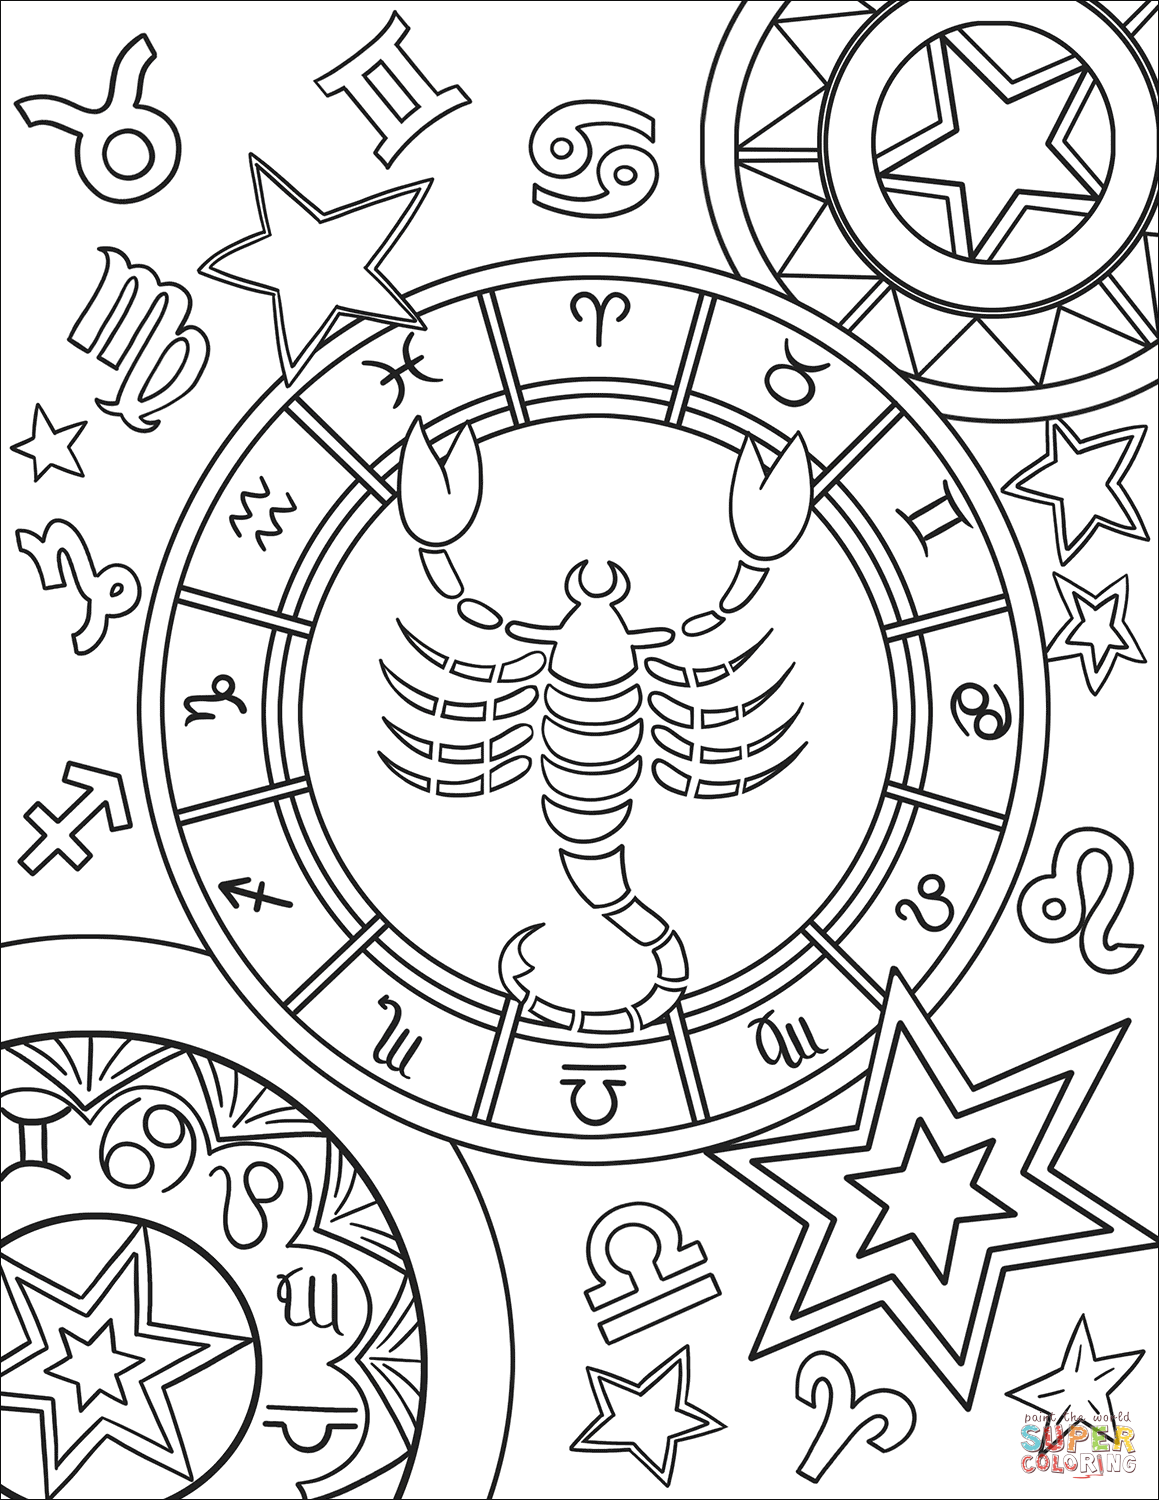 Scorpius Zodiac Sign Coloring Page Free Printable Coloring Pages